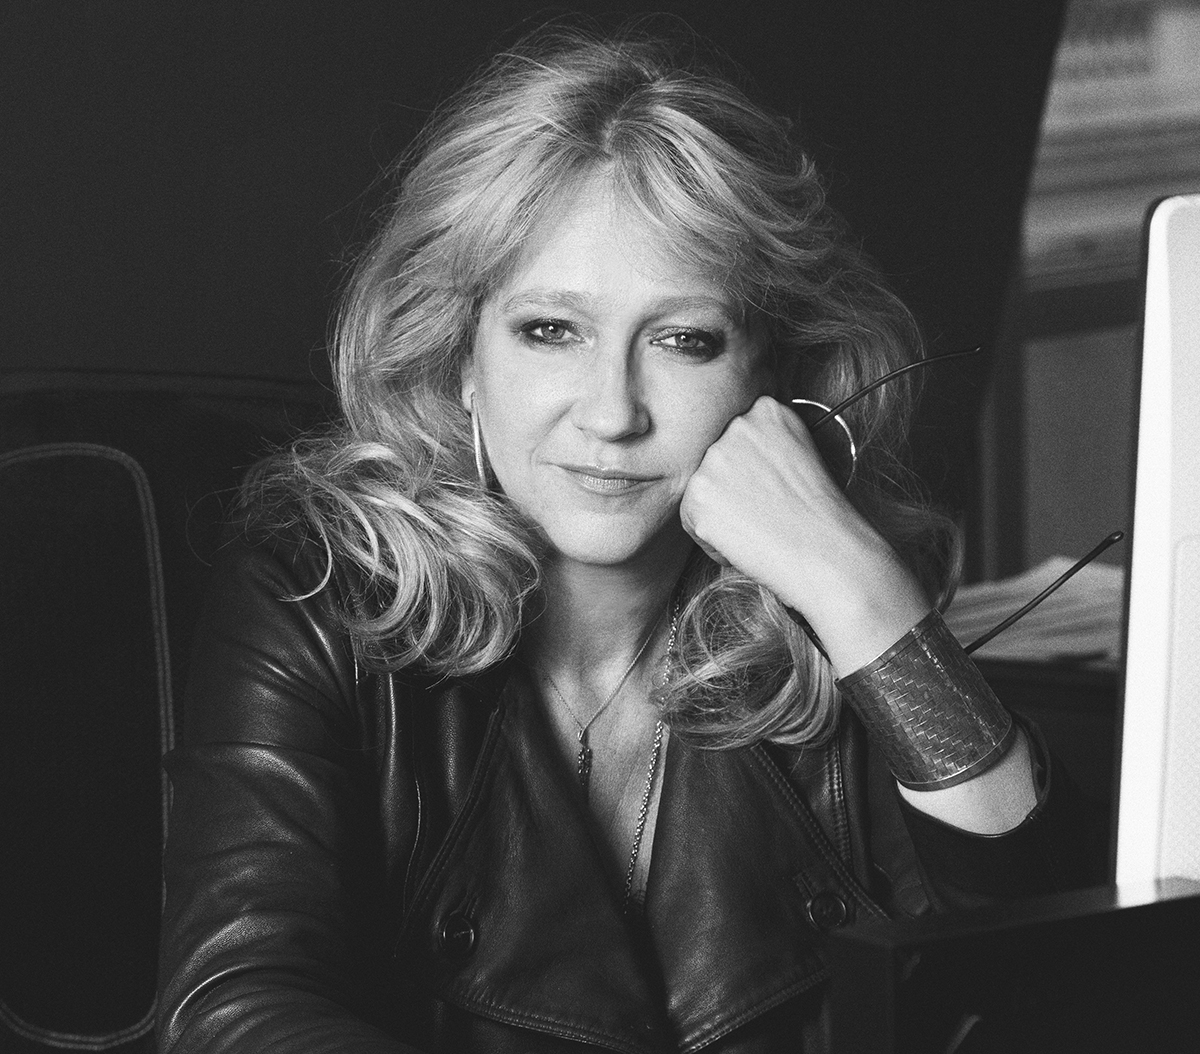 Sonia Friedman on juggling Mean Girls and Dreamgirls